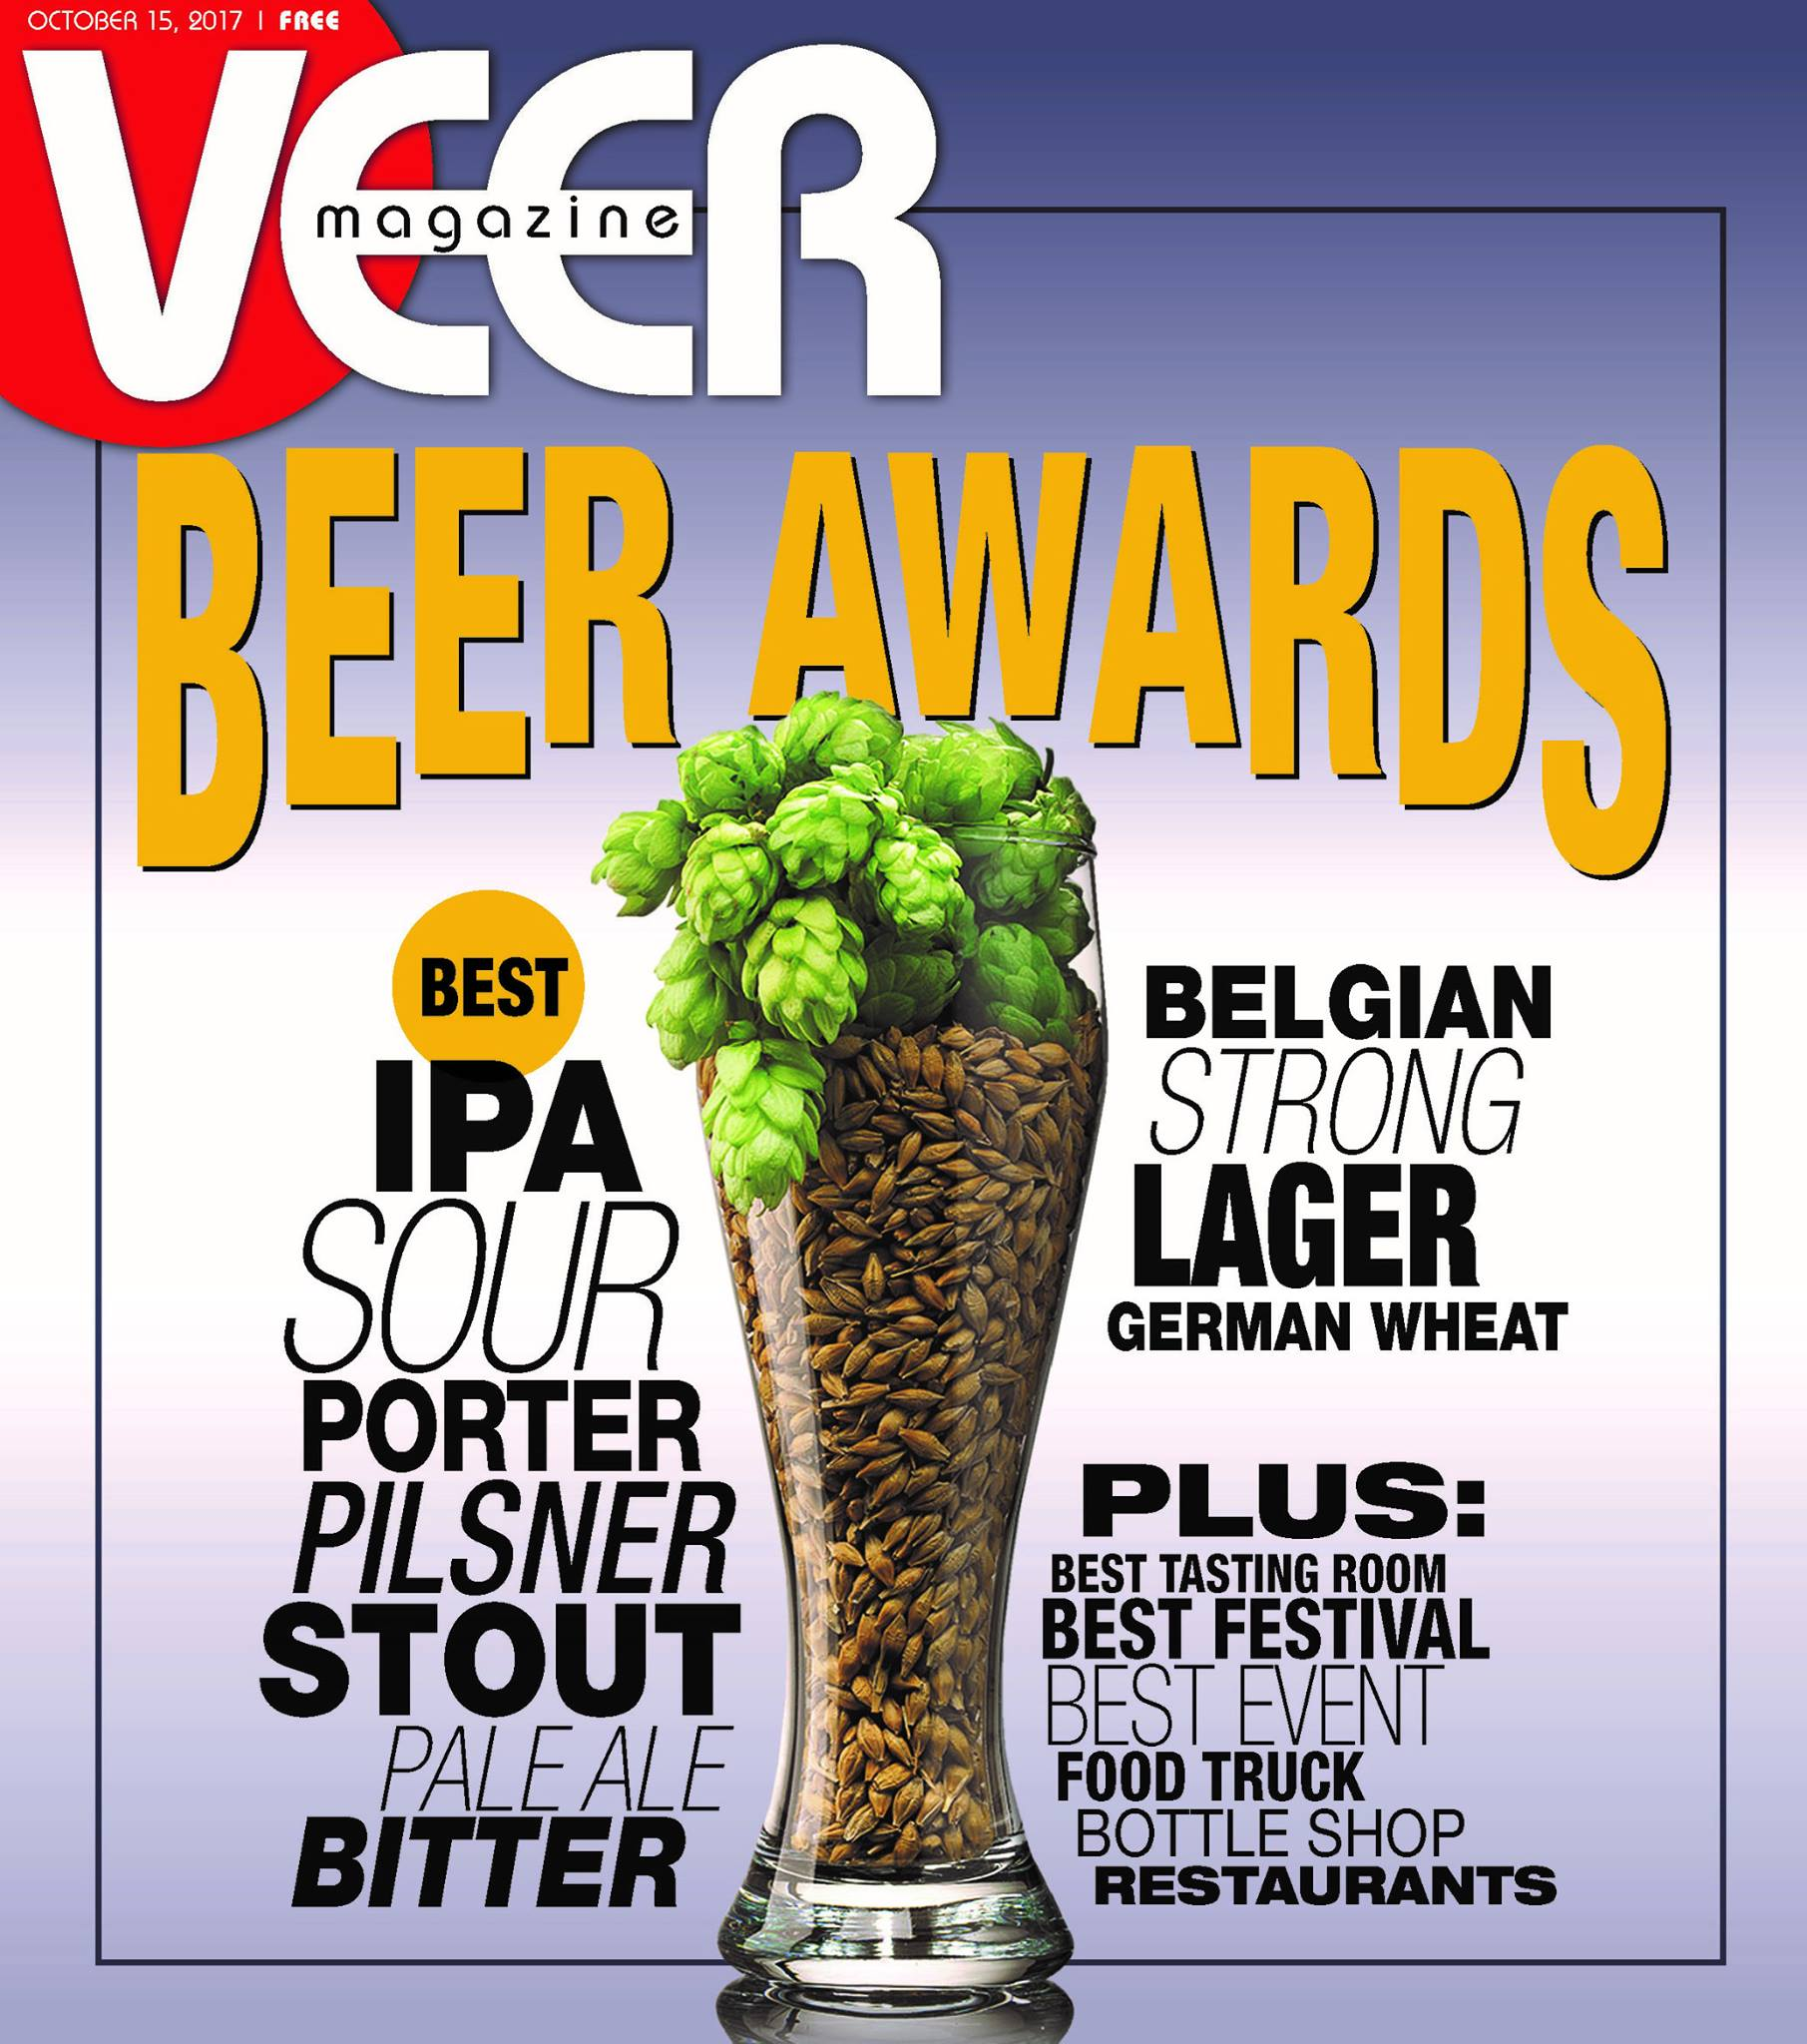 VEER's 2017 Golden Tap Local Beer Awards